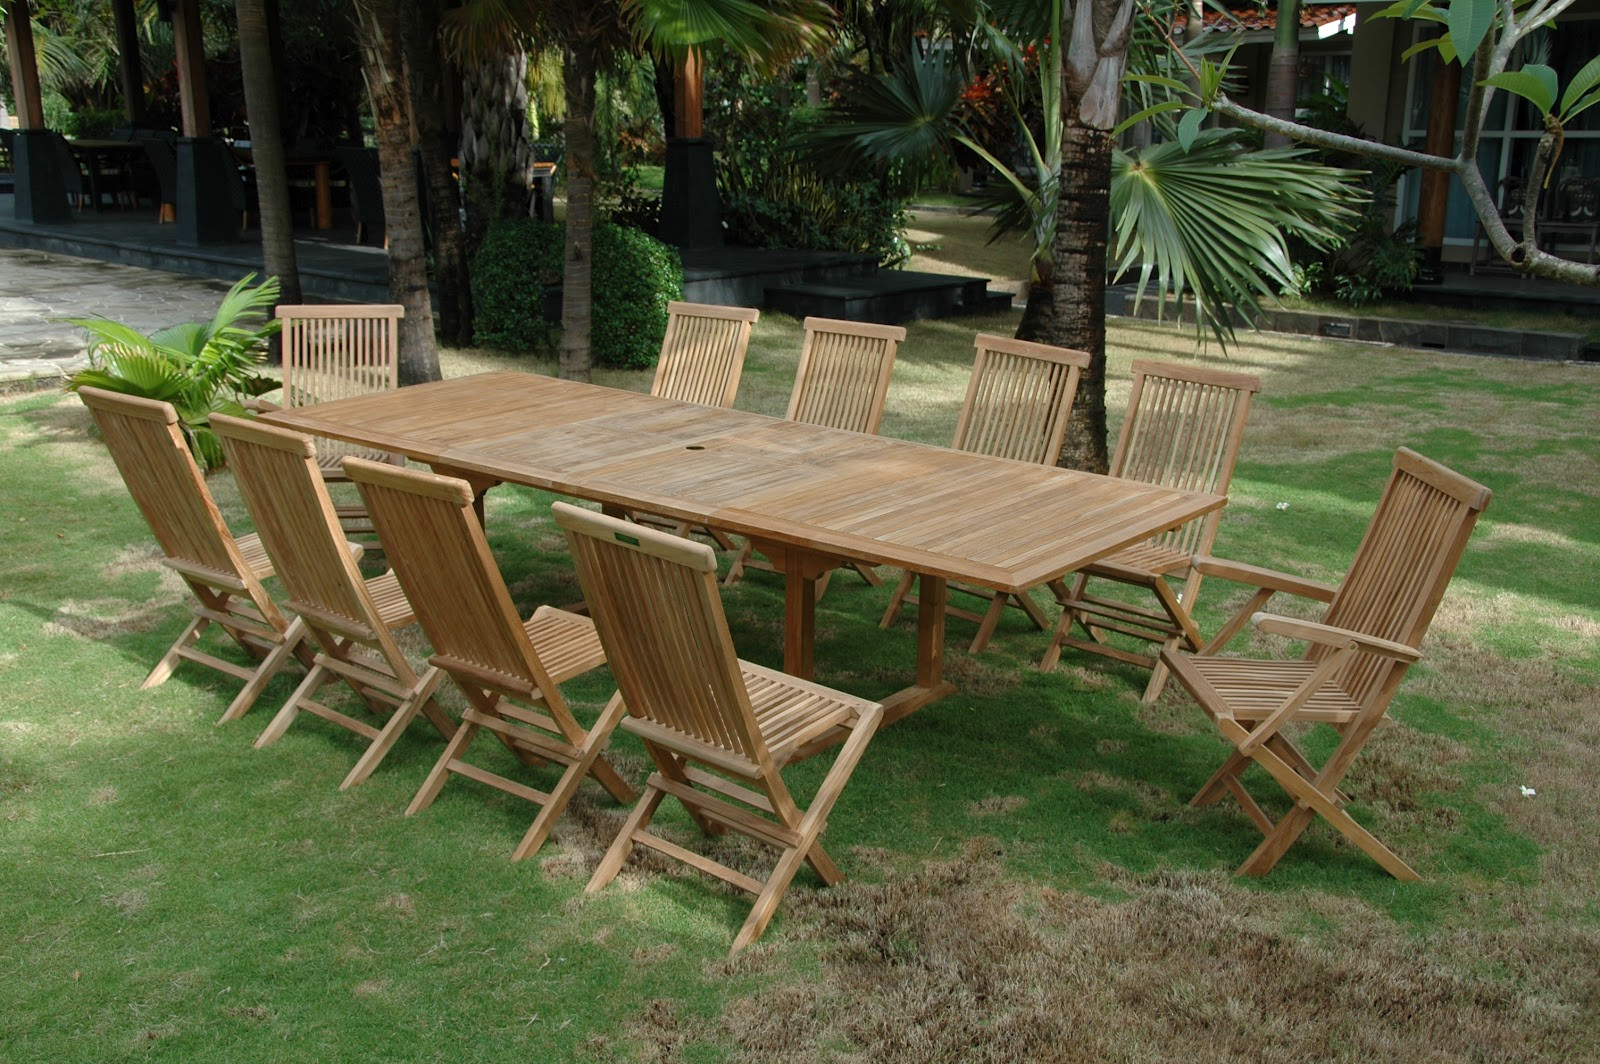 Best ideas about Wooden Patio Furniture . Save or Pin line House Plans Wooden Outdoor Furniture fering fort Now.